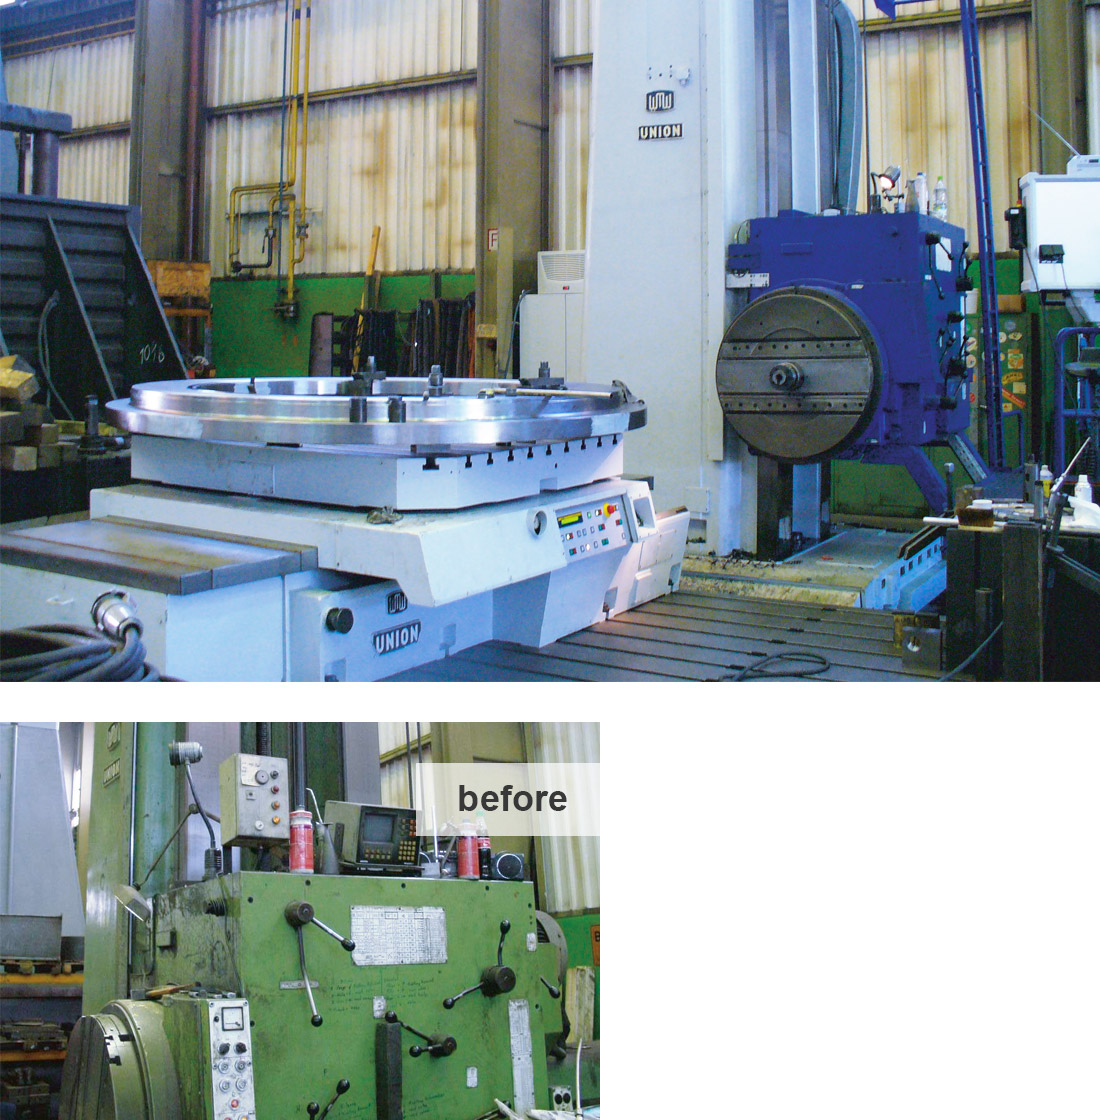 EDM Technik, Machine tool manufacturing, Dörries machine tool production, Rebuild machine tools